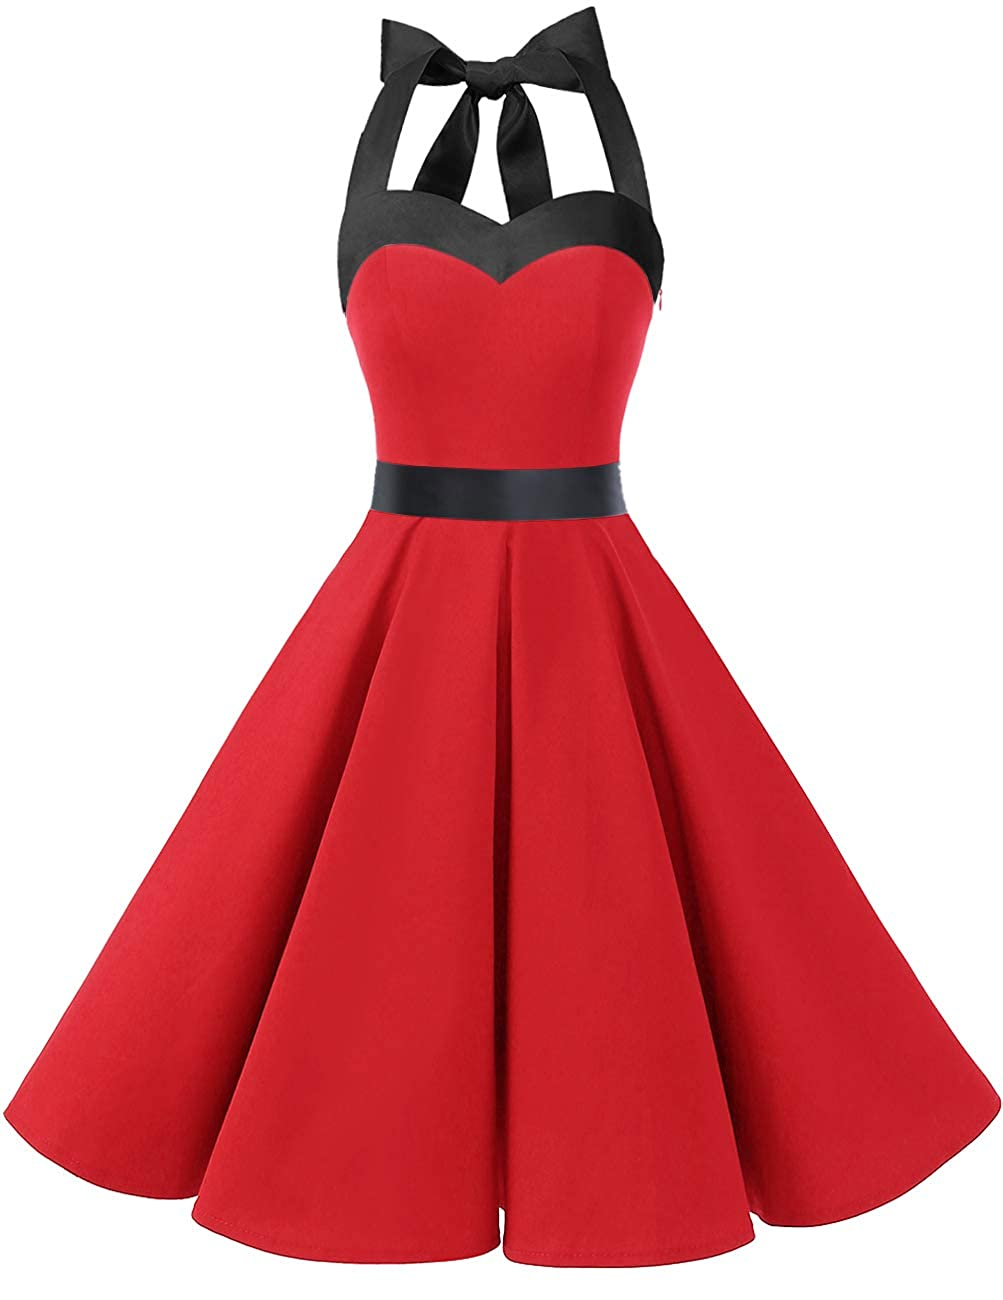 TALLA XL. Dresstells® Halter 50s Rockabilly Polka Dots Audrey Dress Retro Cocktail Dress Red Black XL